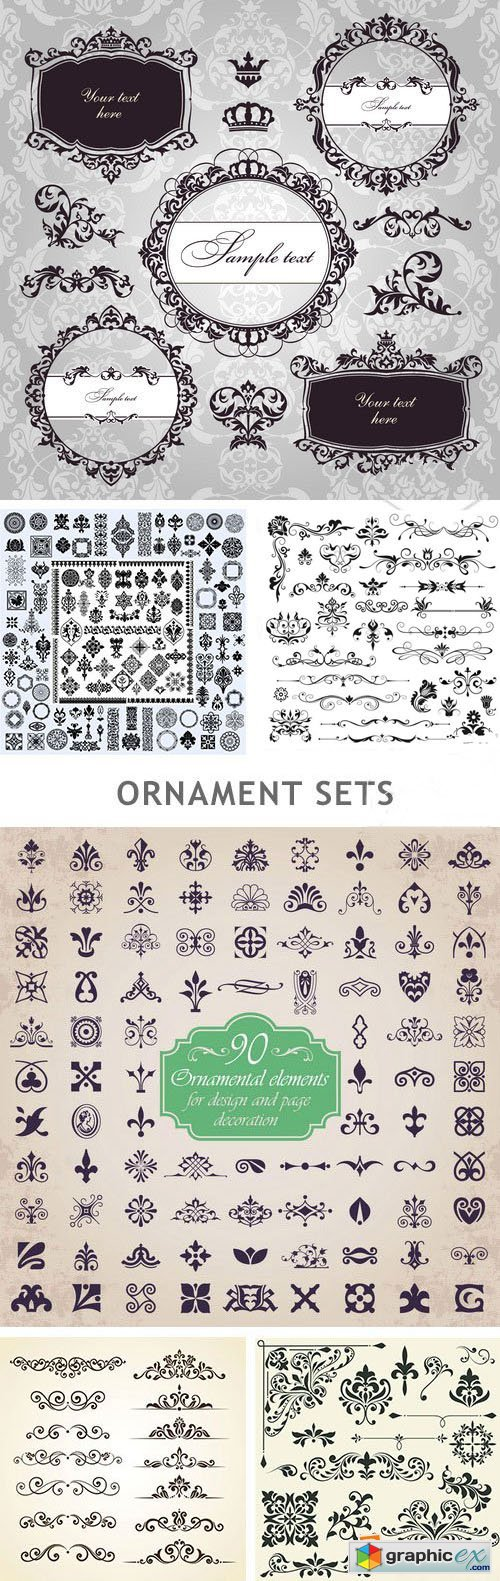 Ornament Sets - 25xEPS